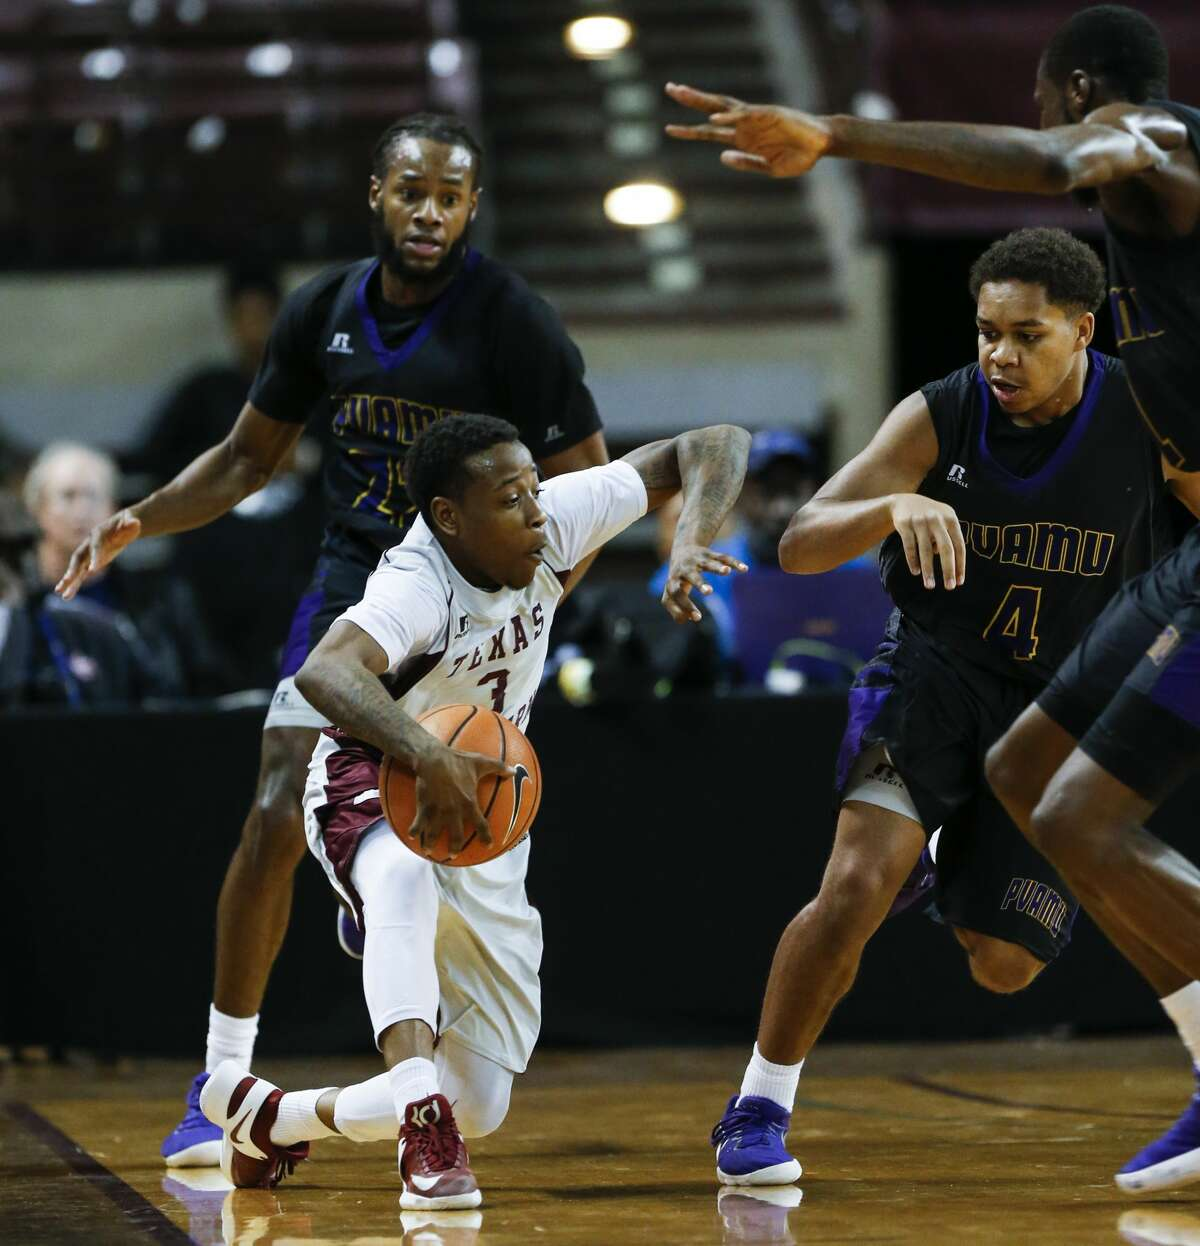 Texas Southern guard Demontrae Jefferson (3) takes the ball upcourt defended by Prairie View A&M guard Juan Hood (4) during the second half of an NCAA basketball game at TSU's HPE Arena on Saturday, Jan. 6, 2018, in Houston. ( Brett Coomer / Houston Chronicle )